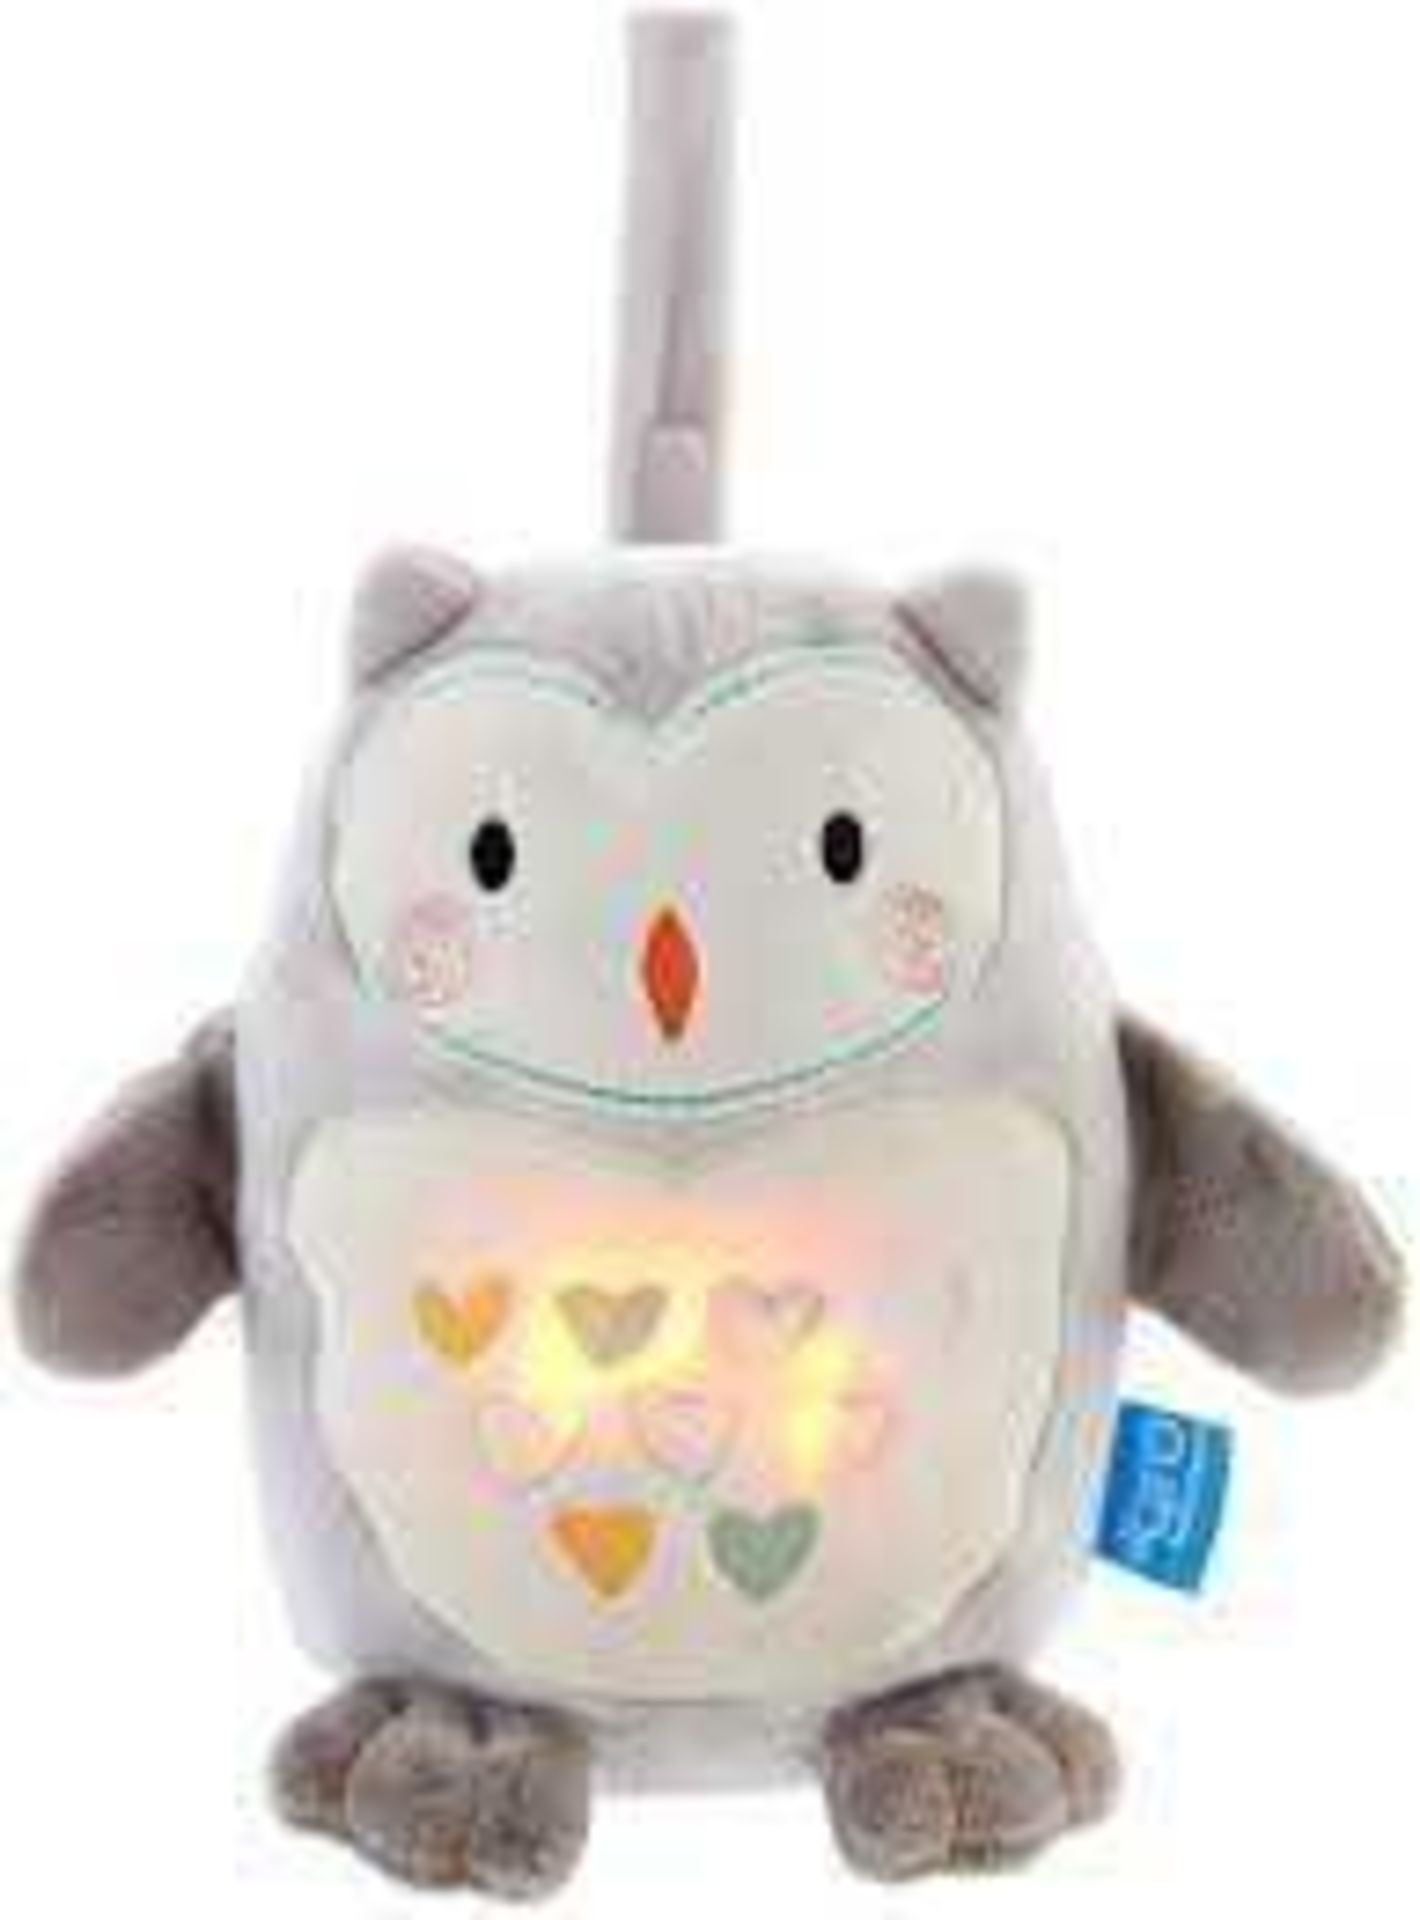 RRP £40 Each Assorted Children Items To Include Tommee Tippee Ollie The Owl Sleep Aid Ewan Deluxe Sl